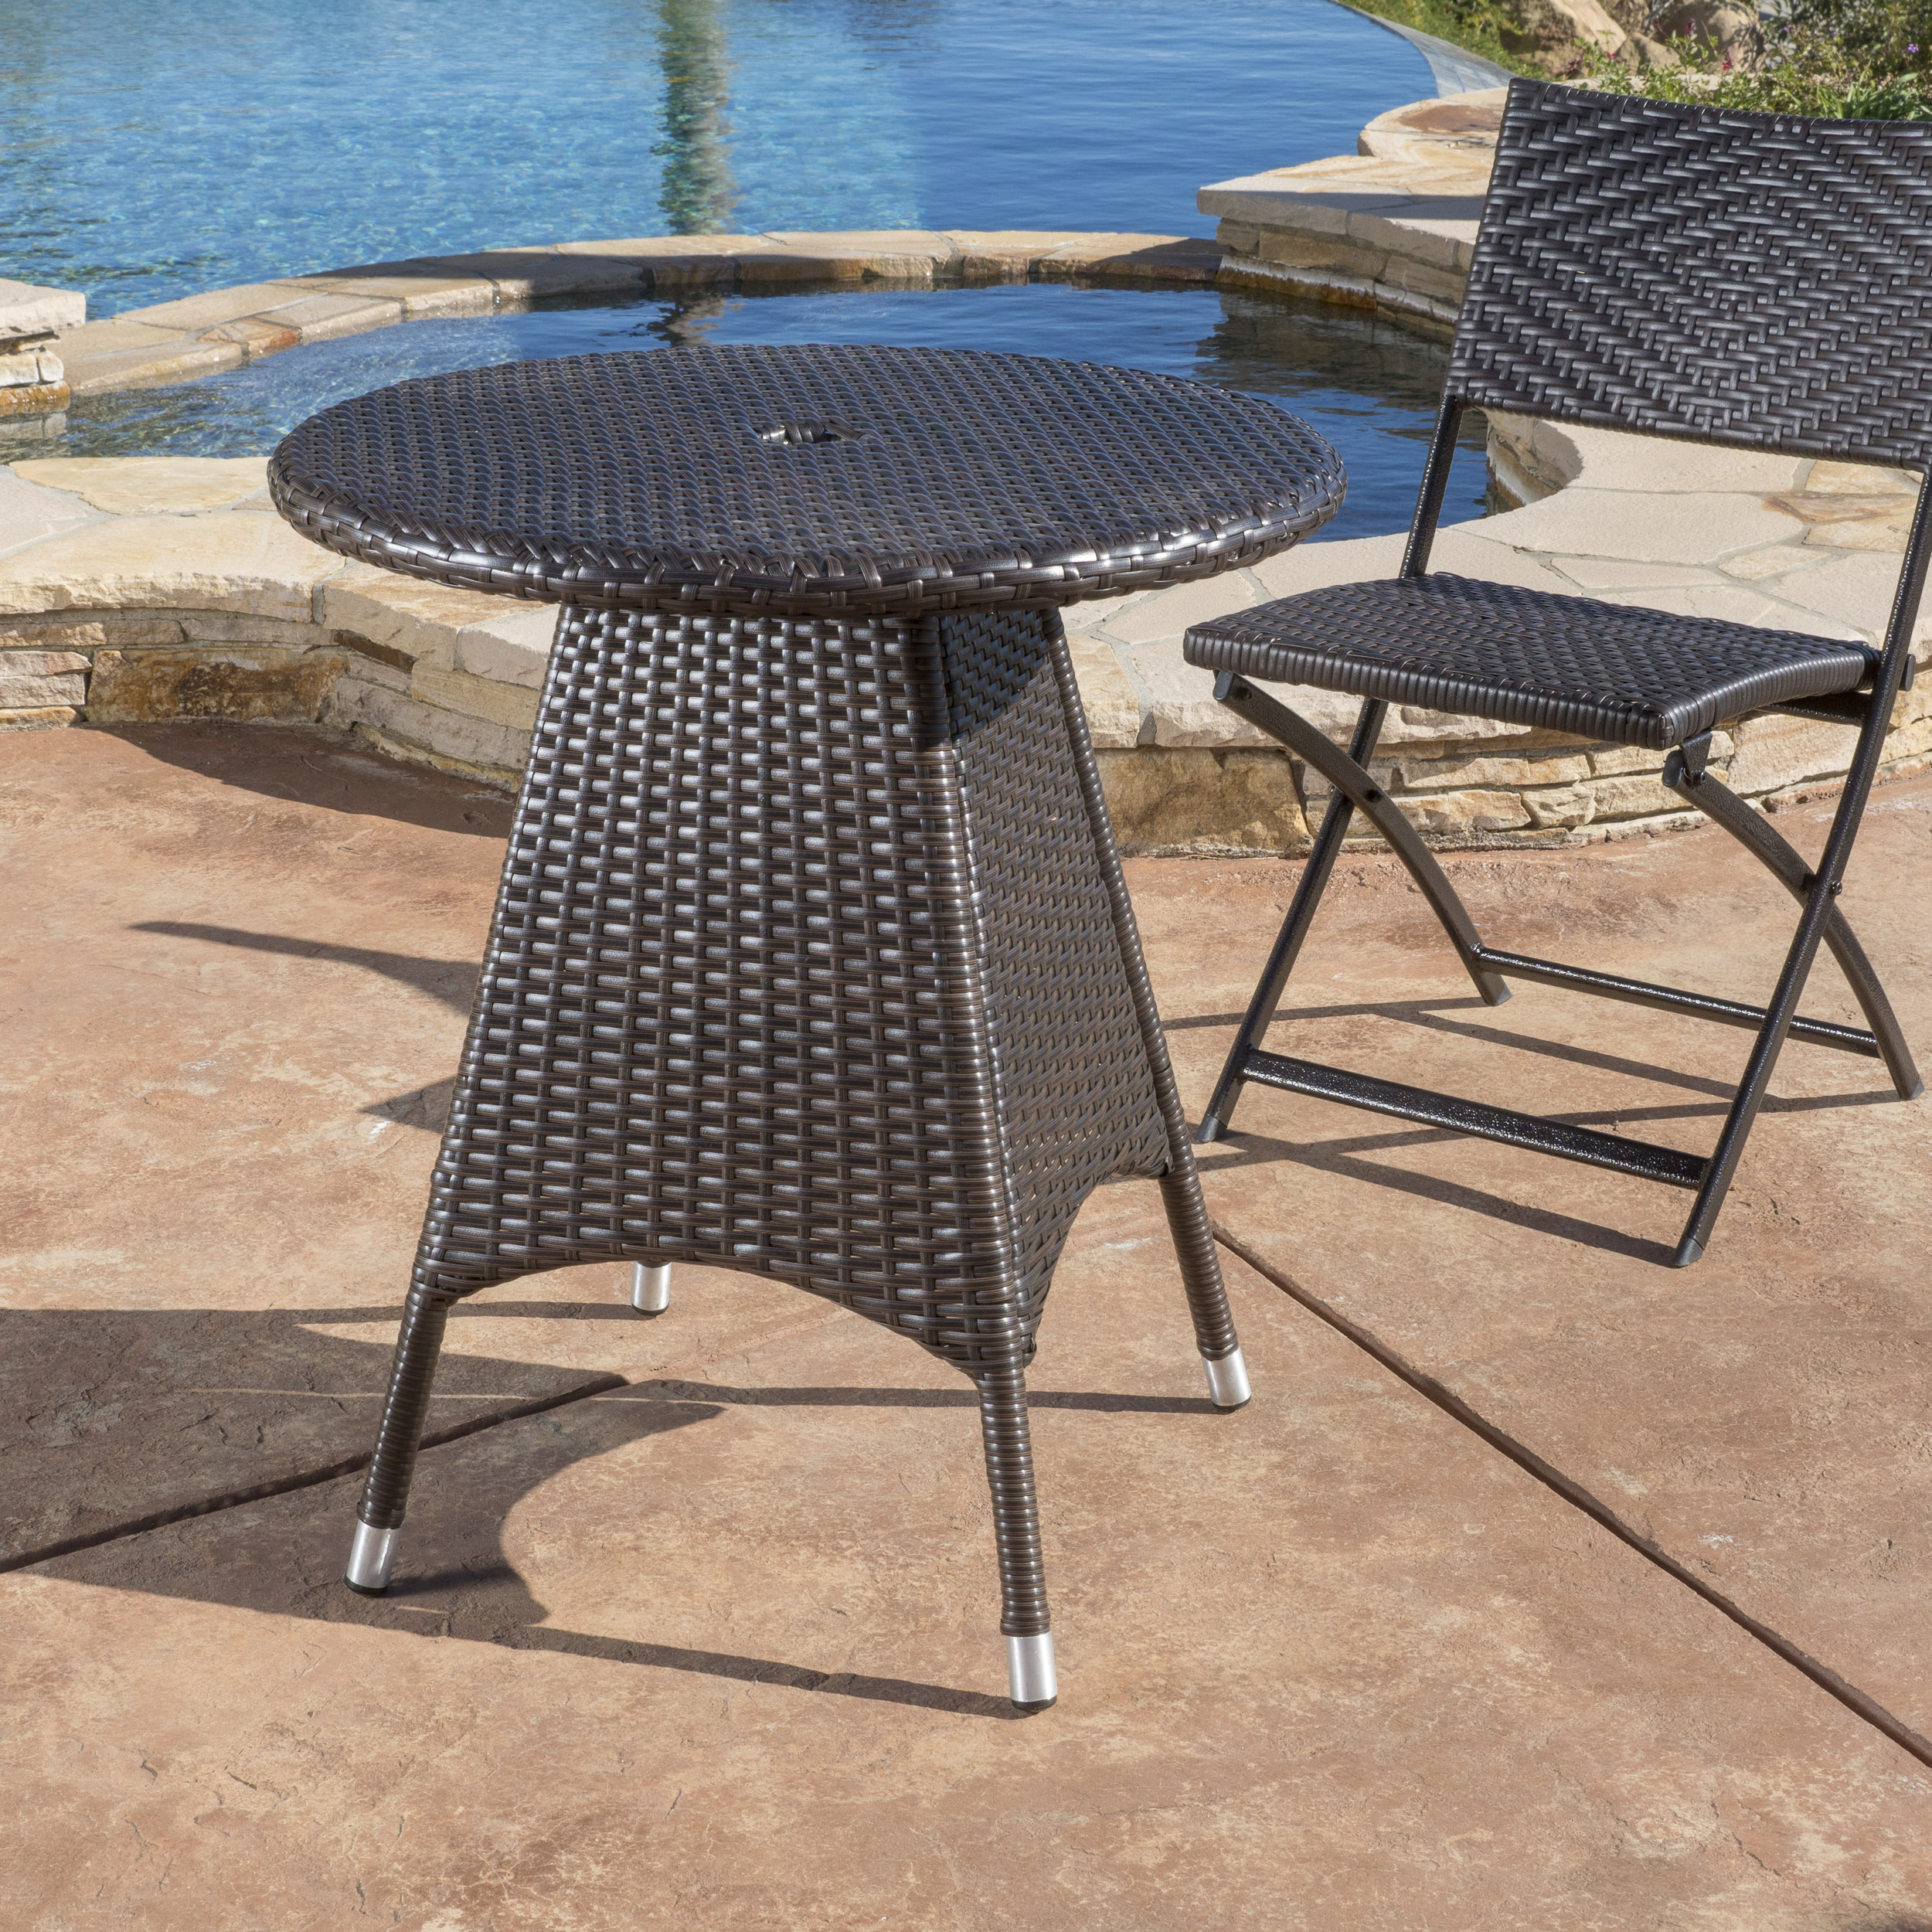 Ramsey Outdoor Round Wicker Bistro Table, Multibrown